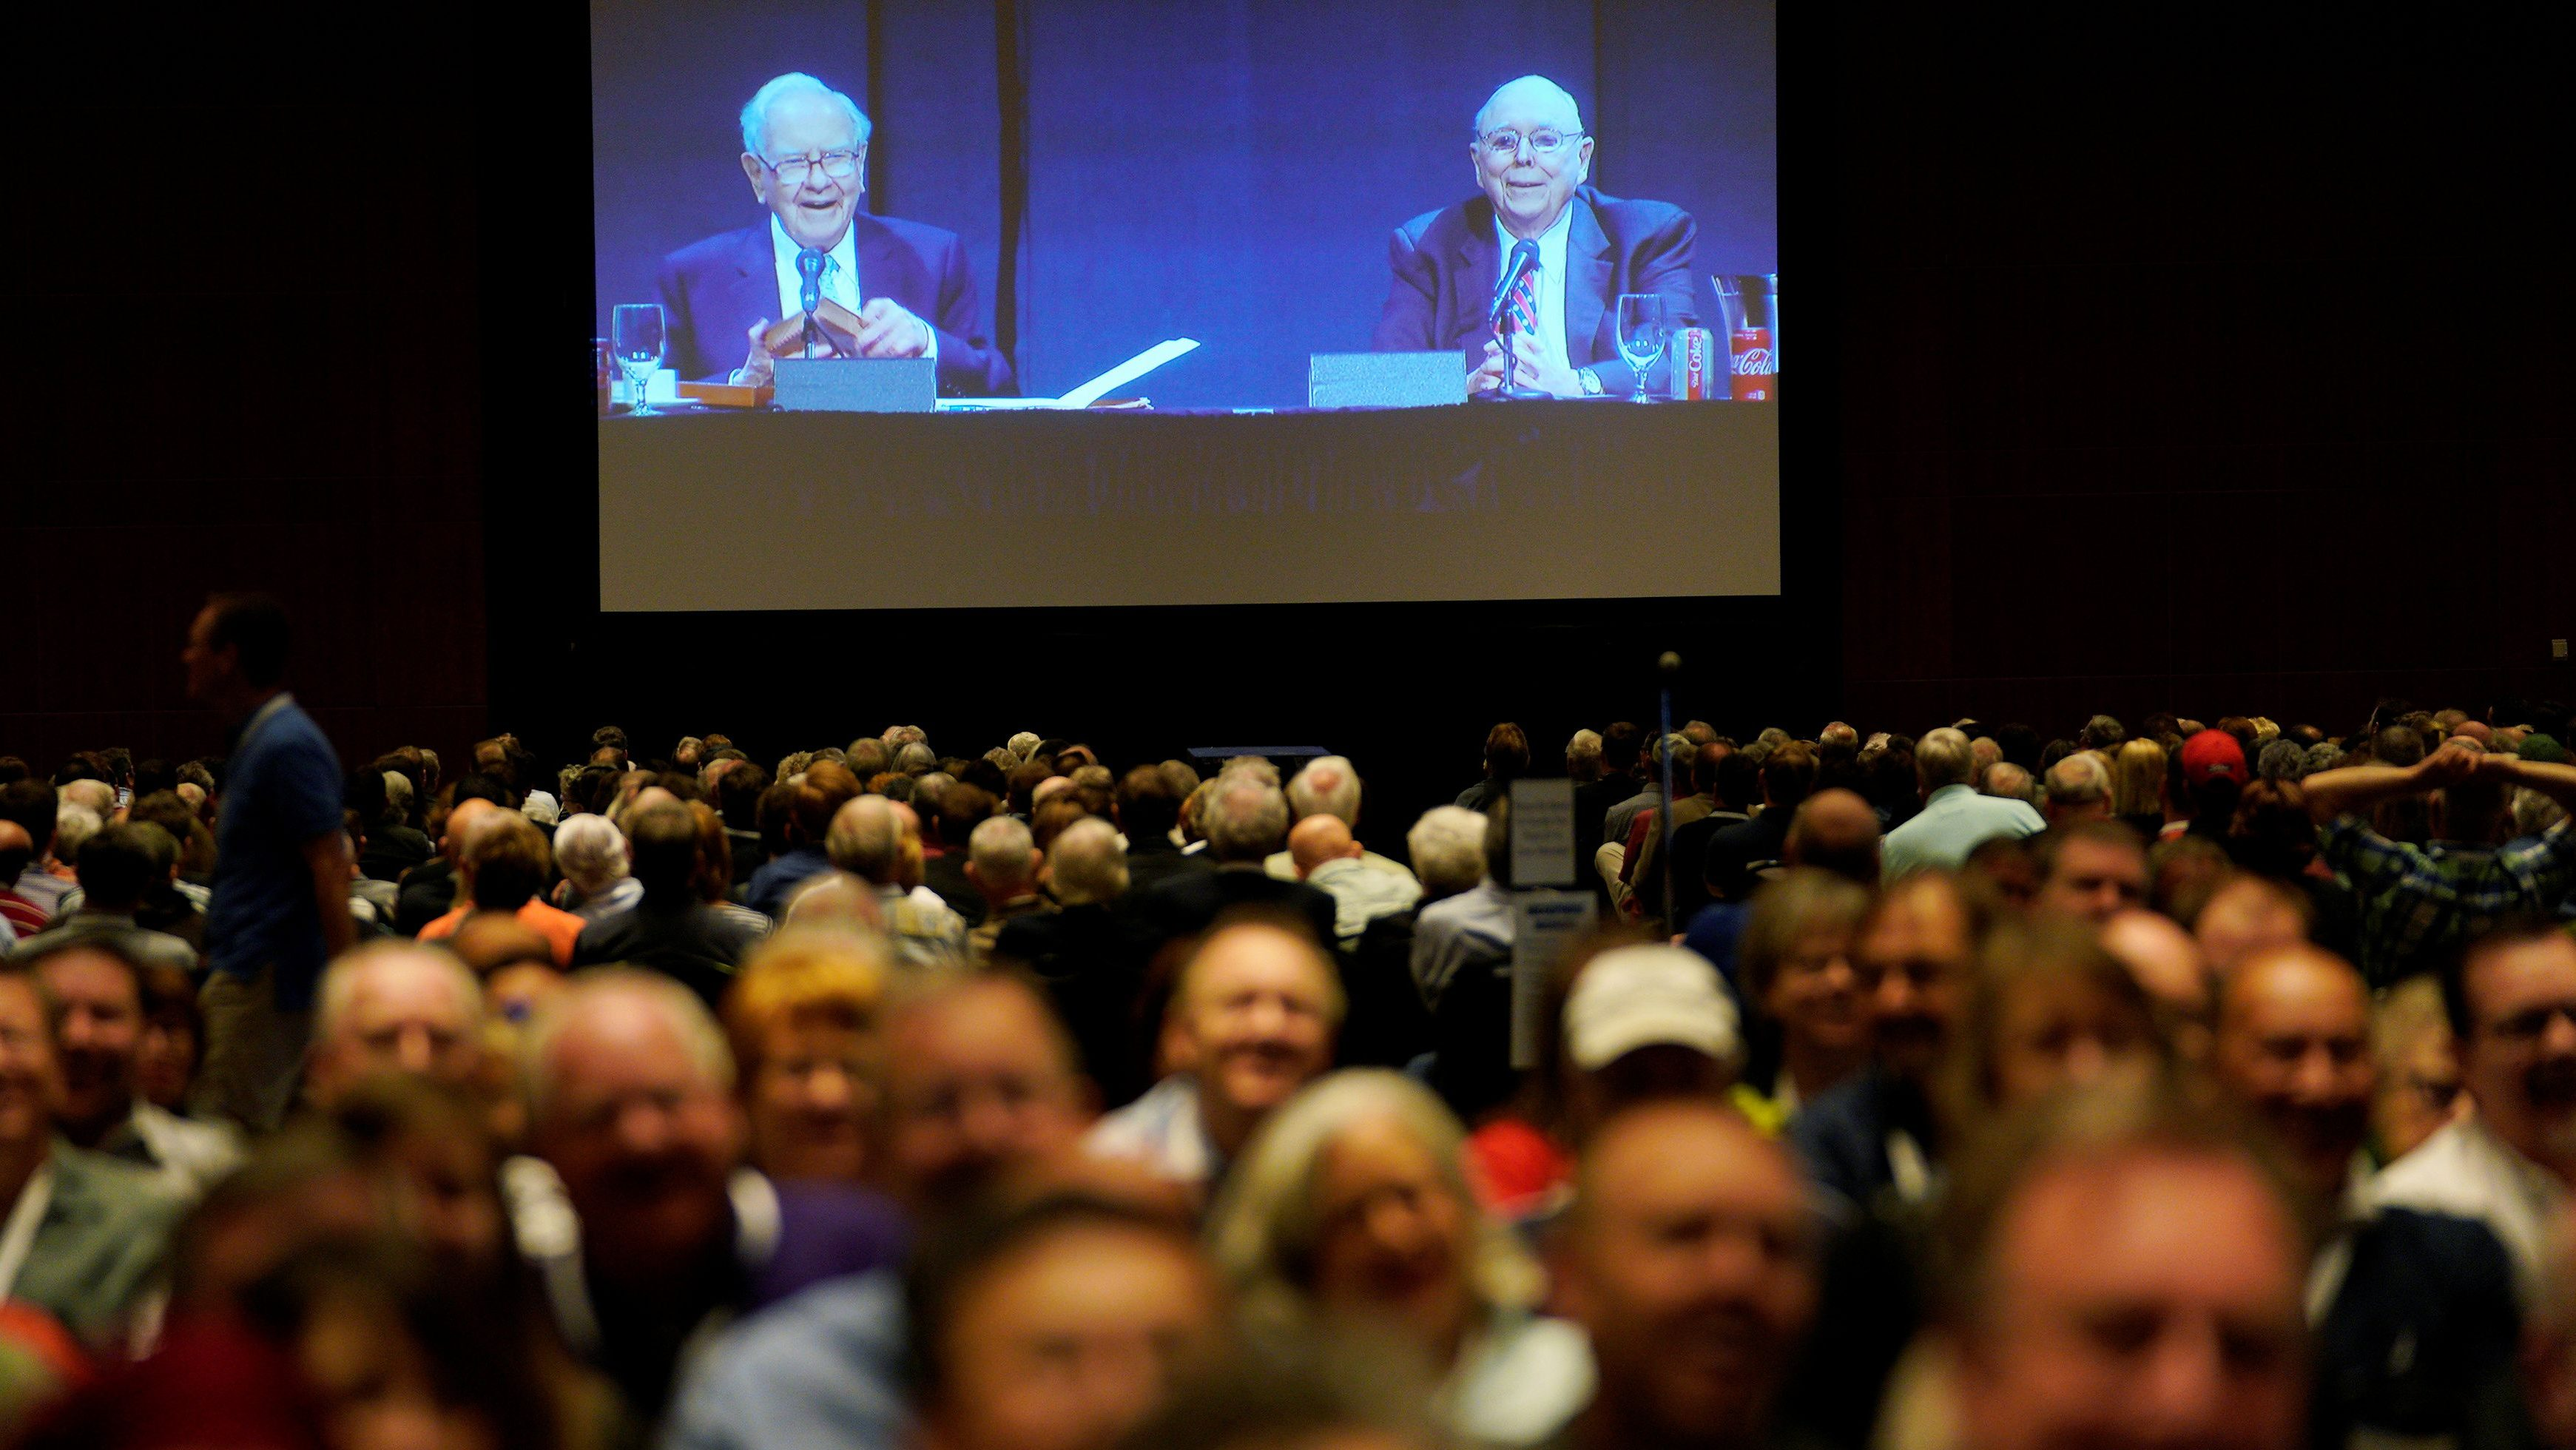 Warren Buffett (L), CEO of Berkshire Hathaway Inc, and Charlie Munger, vice chairman of Berkshire are seen on a screen at the company's annual meeting in Omaha, Nebraska, U.S., May 5, 2018.